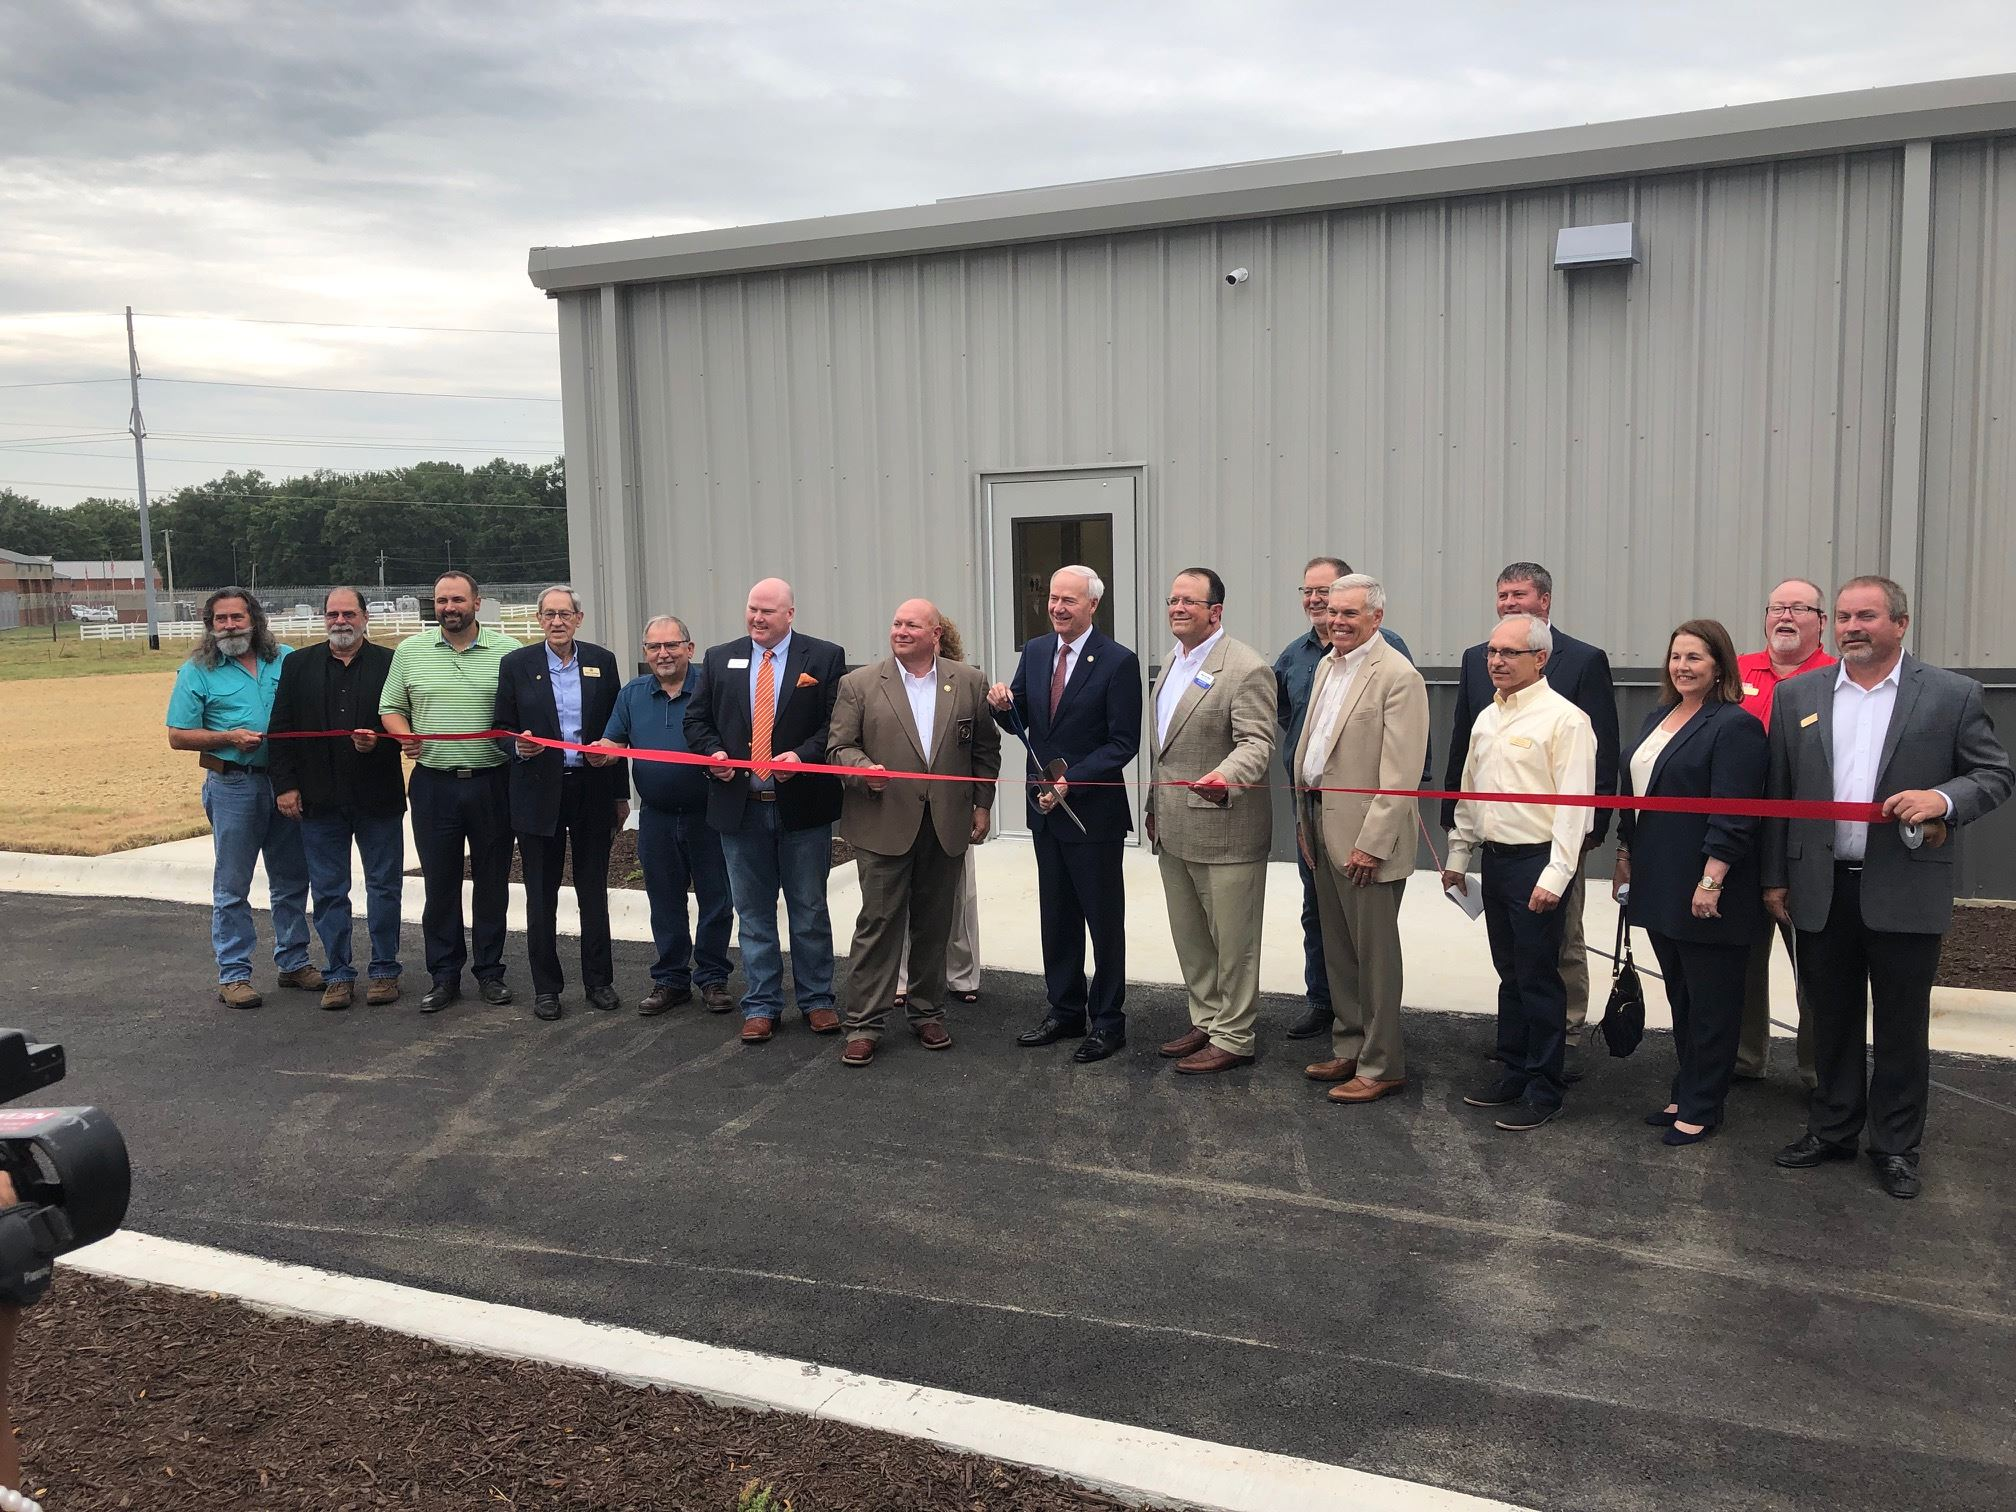 Governor Hutchinson with other officials including Mayor Perrin about to cut the ribbon for Craighea